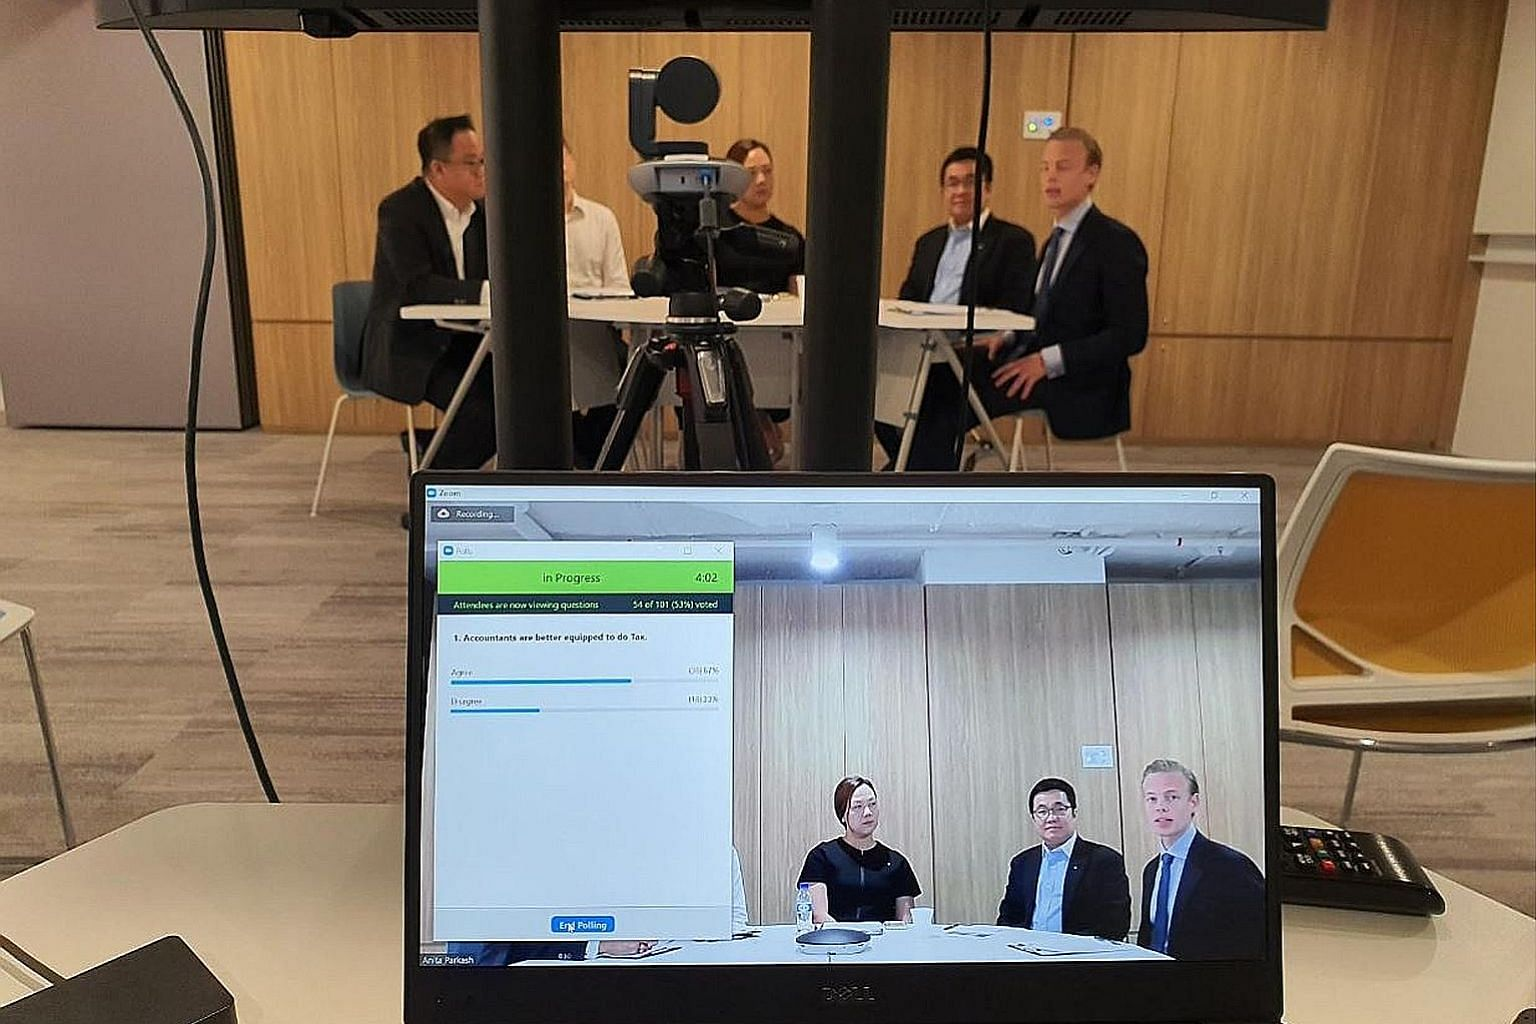 The panel conducting the Singapore Academy of Law's webinar, Tax Essentials for Young Corporate Lawyers, held earlier this month. PHOTO: SINGAPORE ACADEMY OF LAW